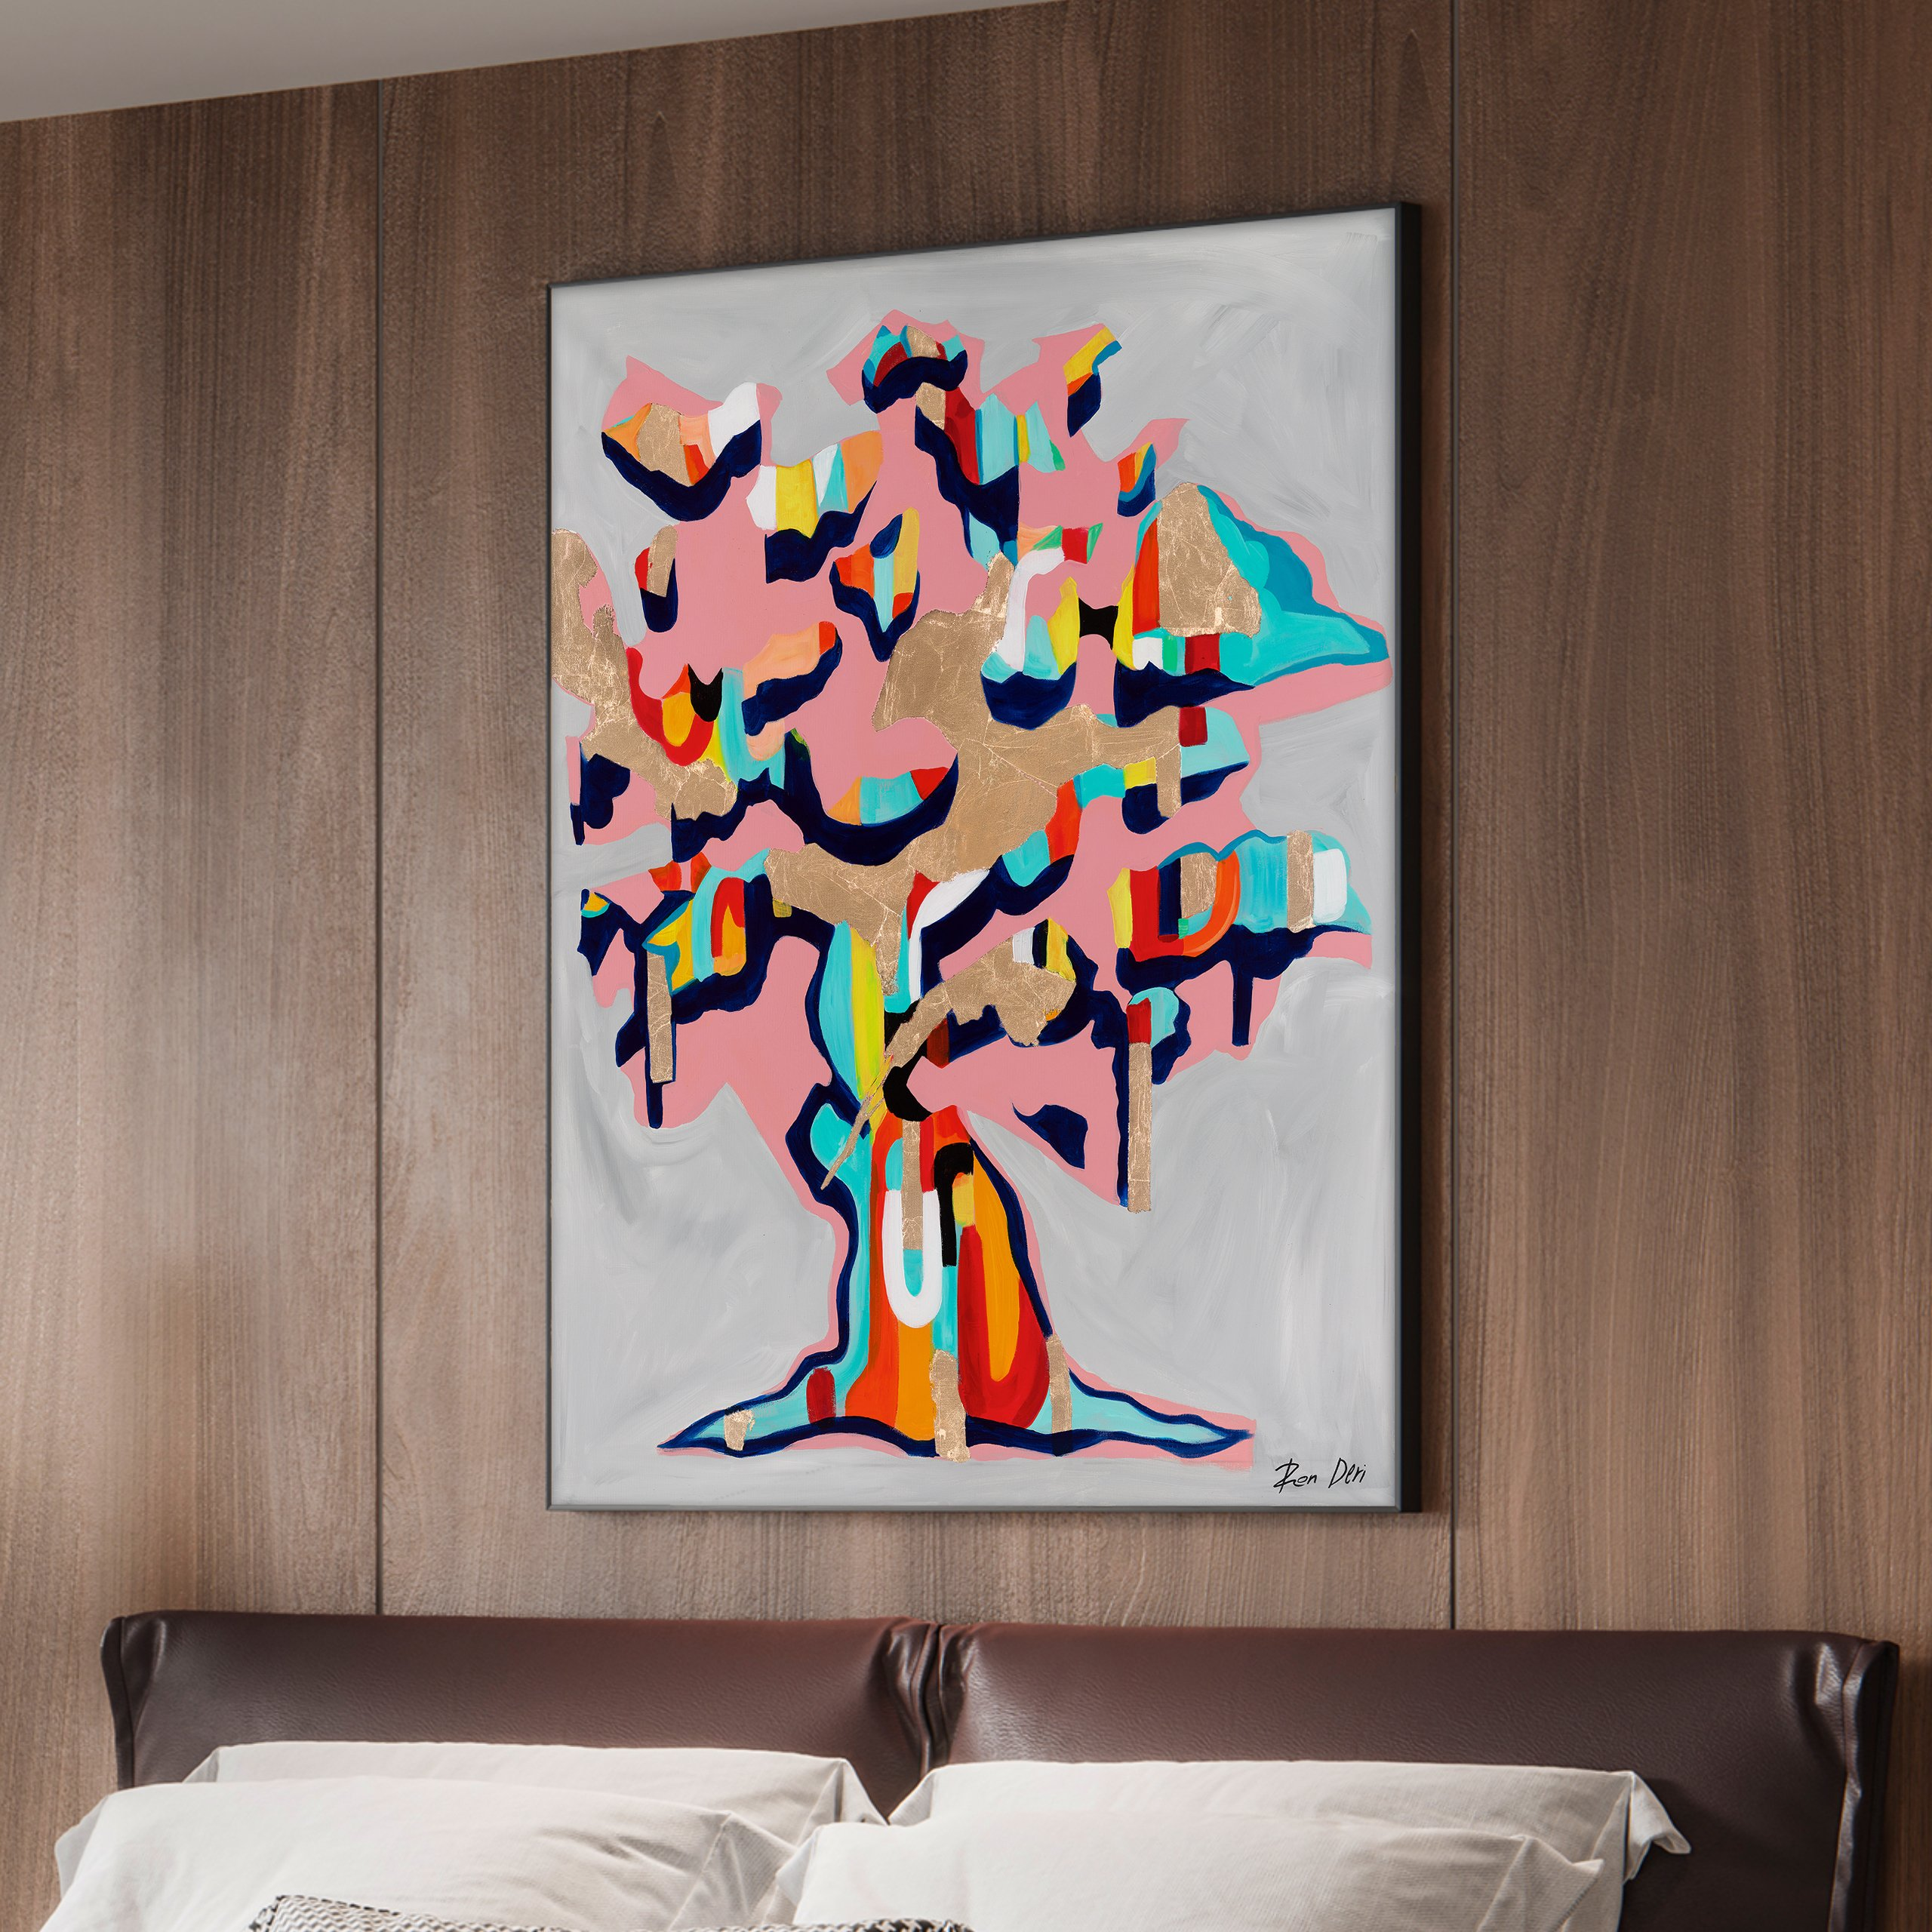 the-giving-tree-ron-deri-contemporary-abstract-painting